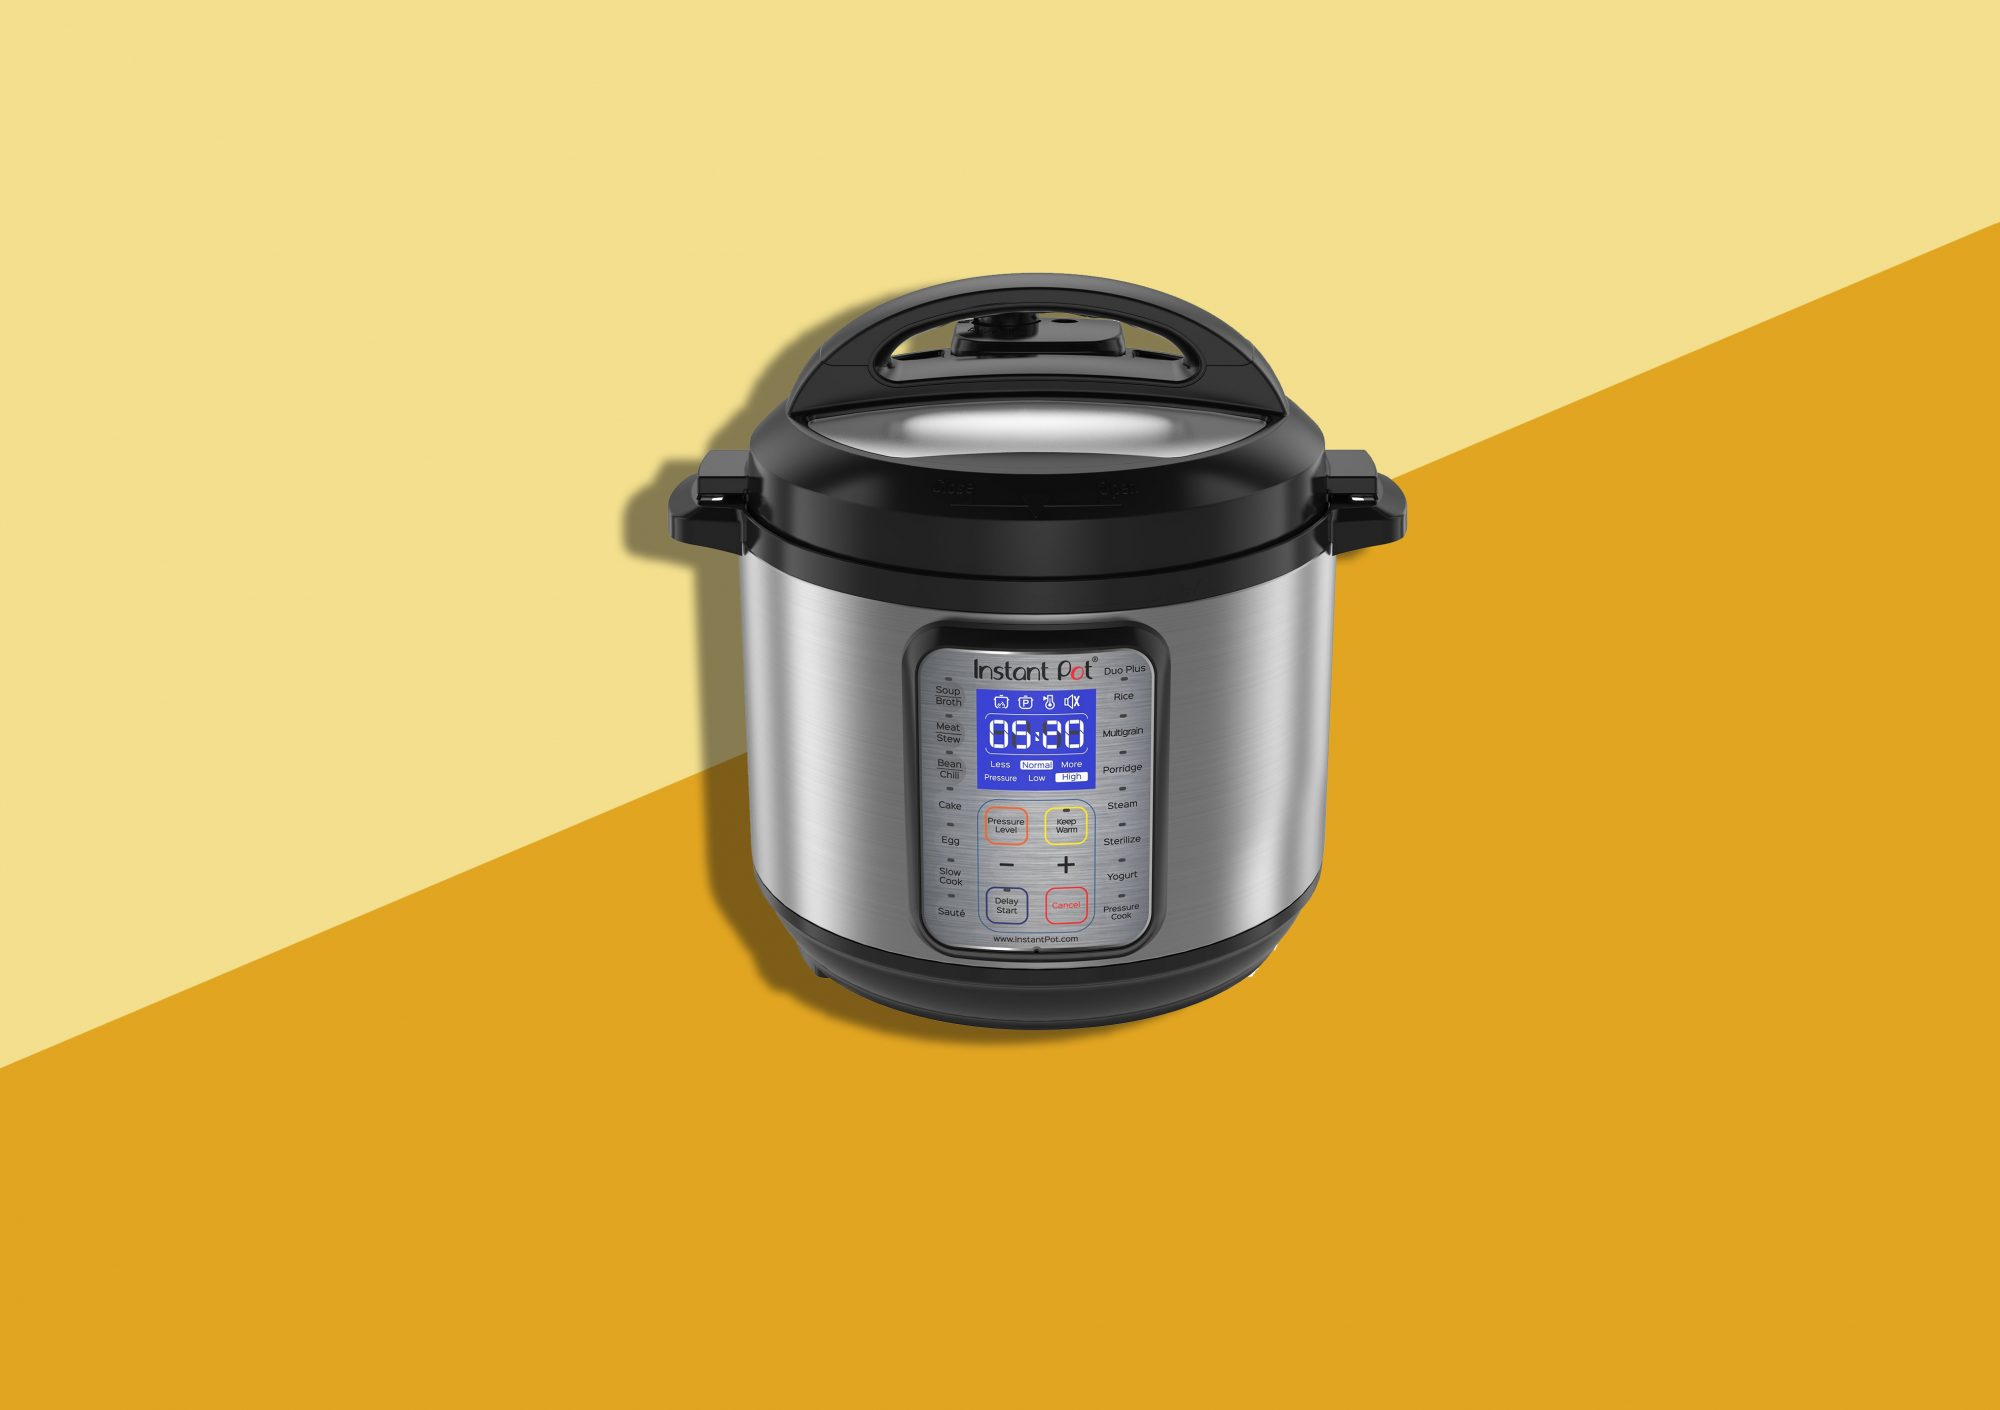 5 Hacks for your instant pot that you probably haven't tried yet